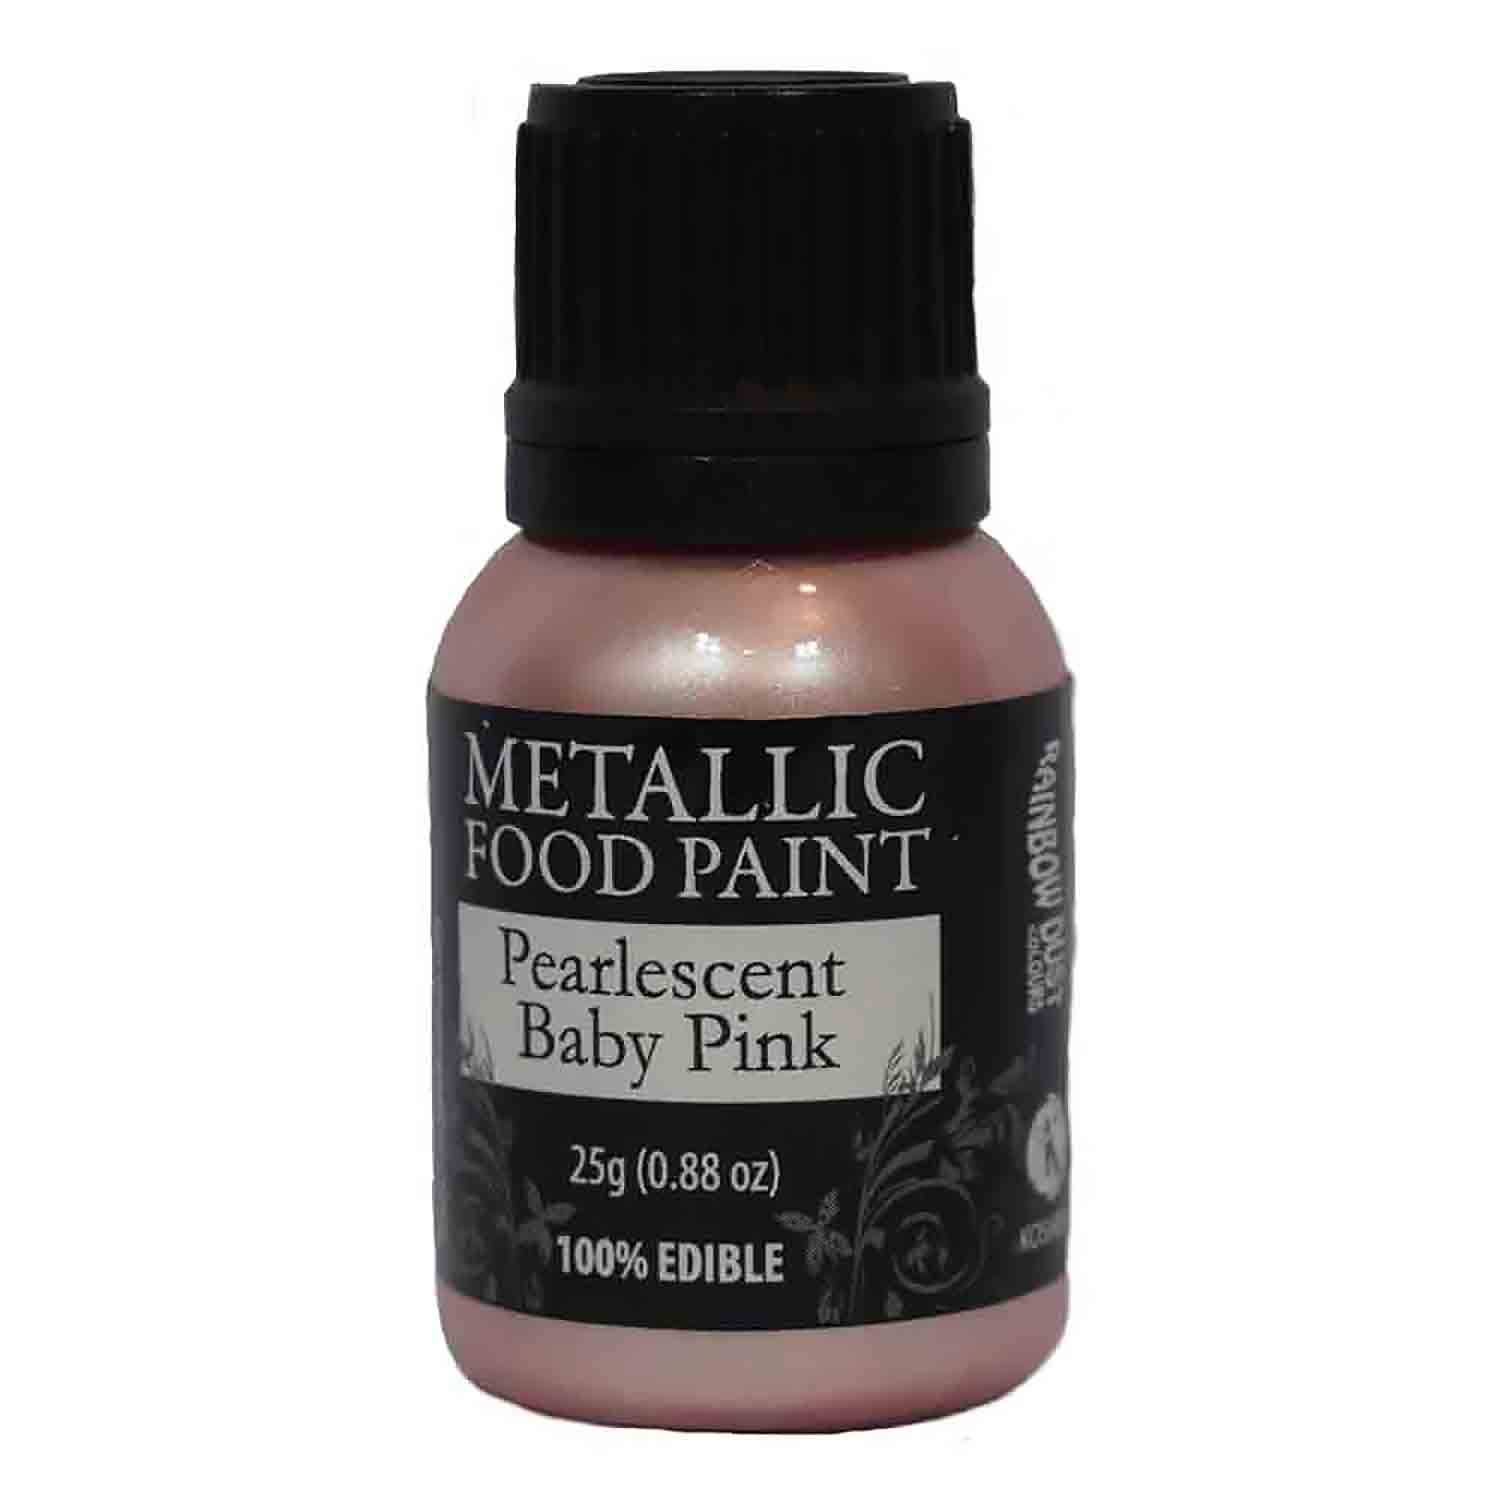 Pearlescent Baby Pink Metallic Food Paint